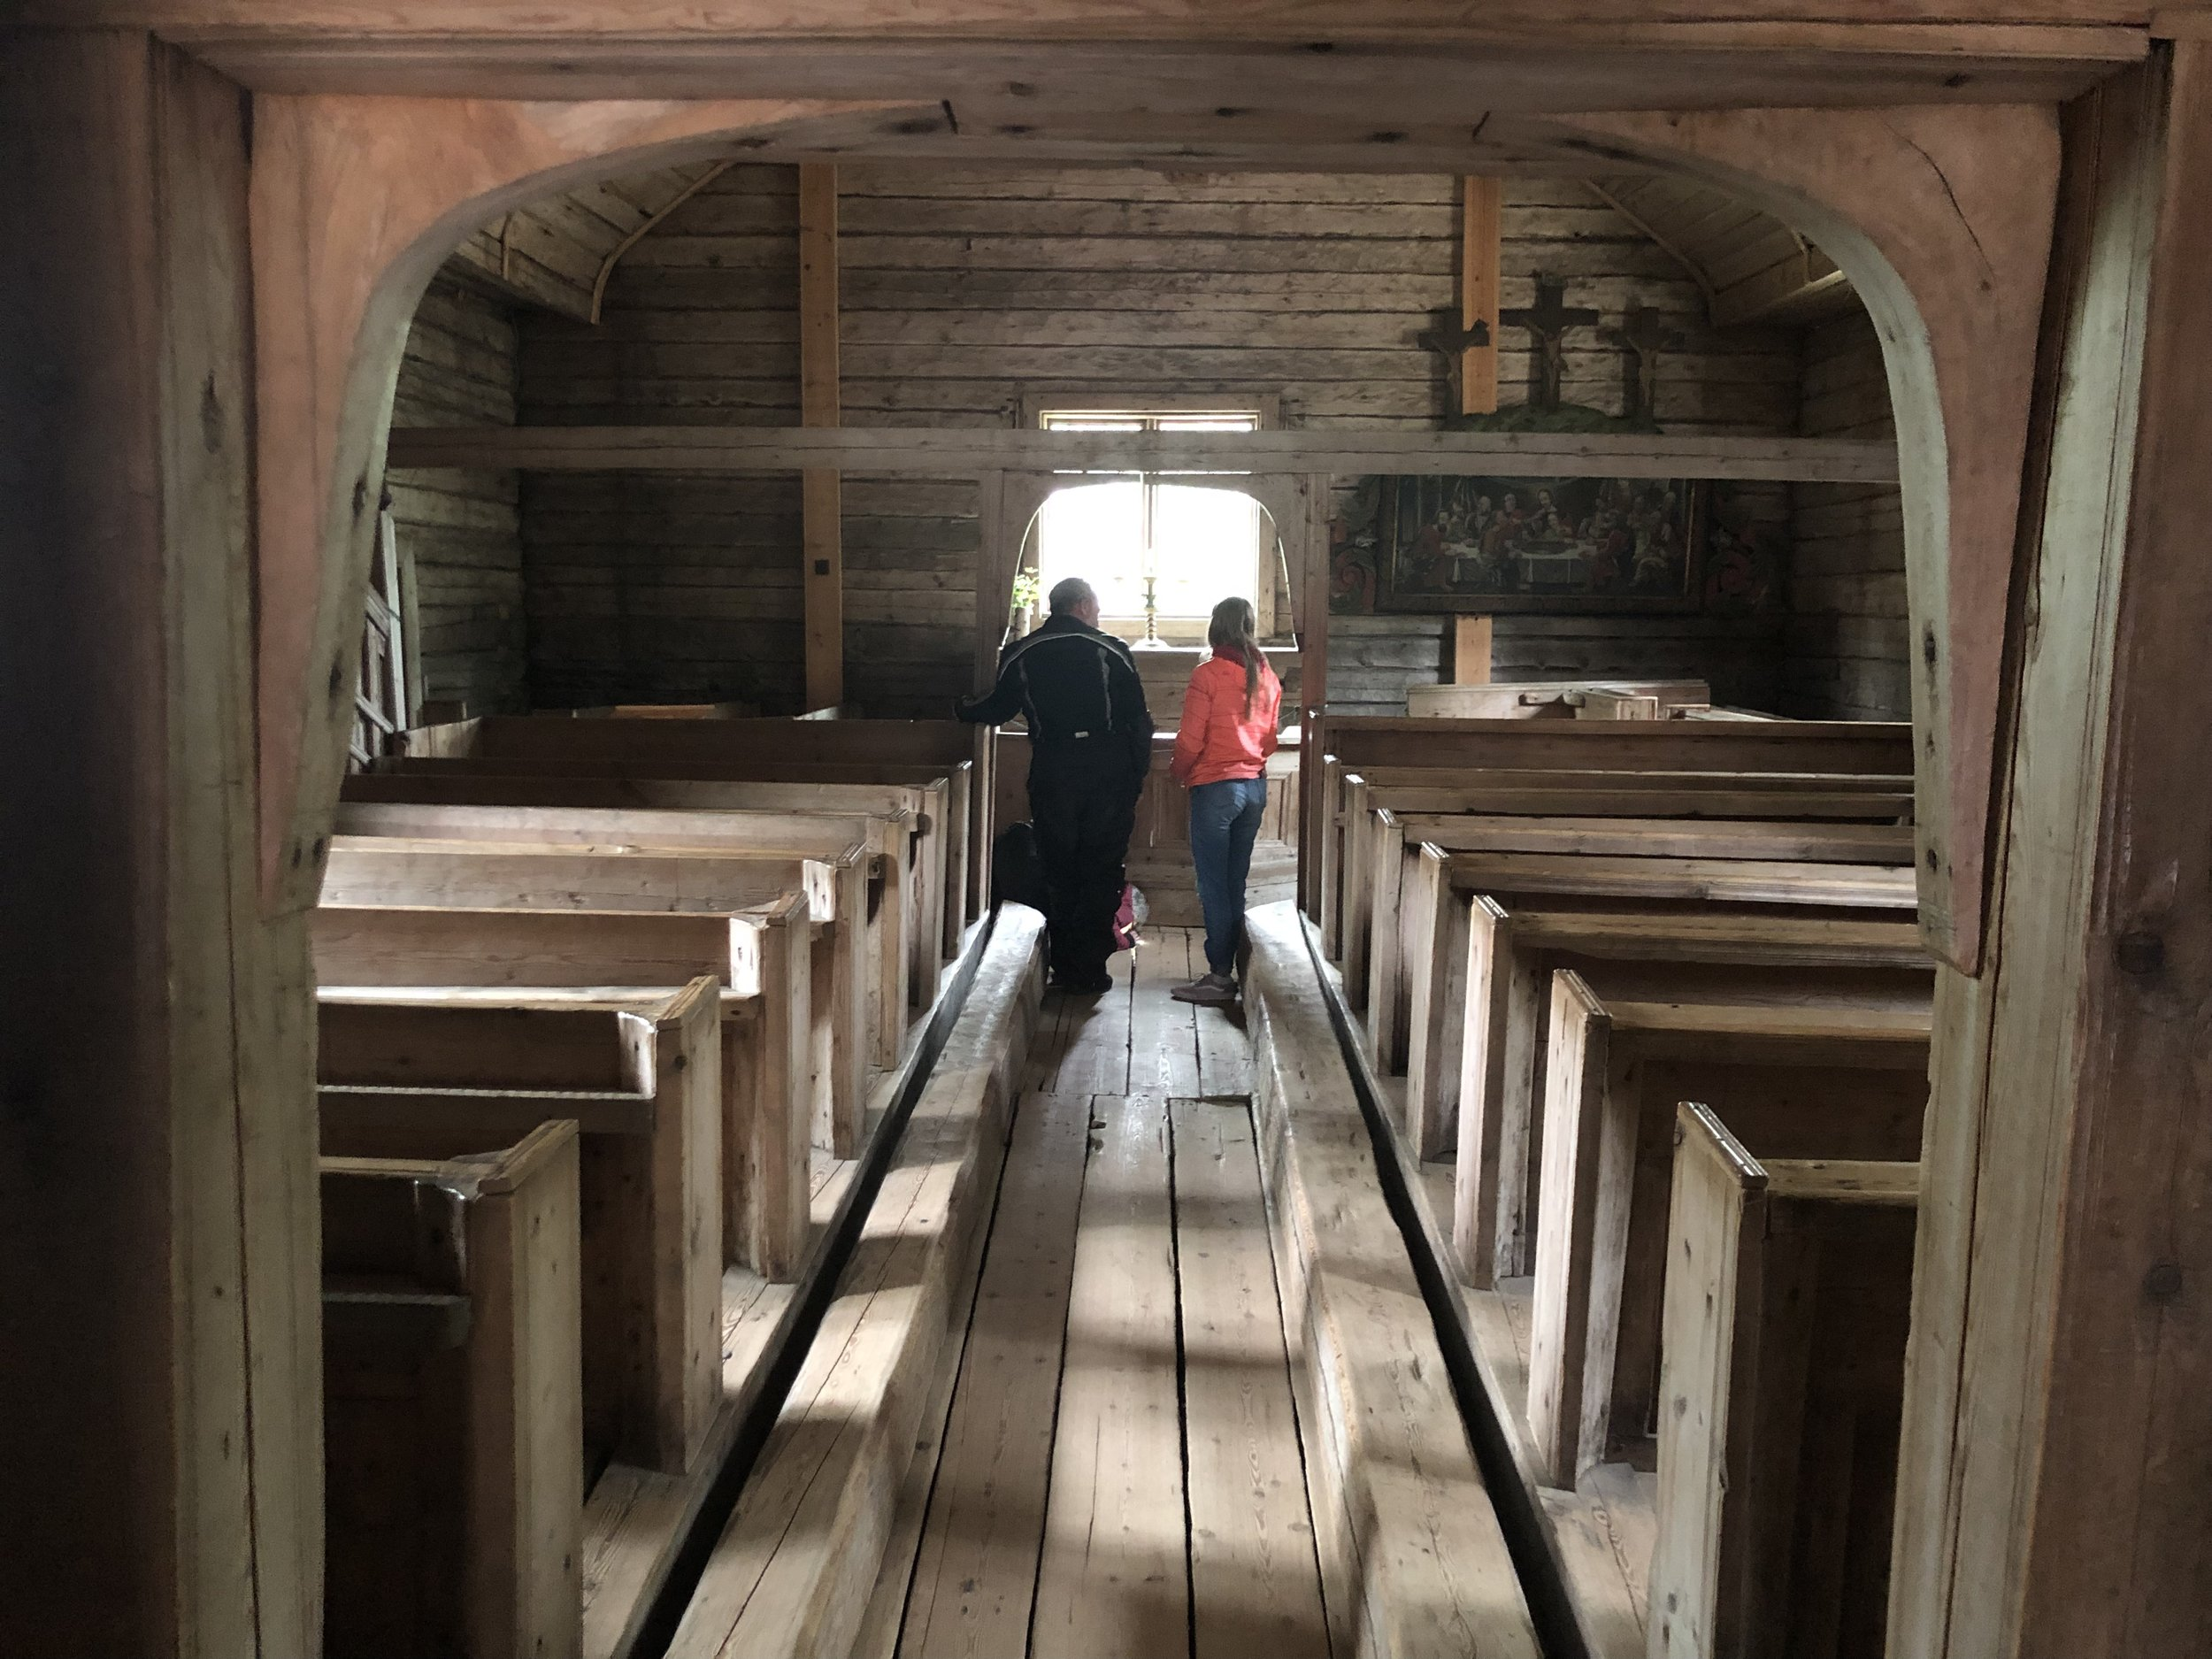 This is the inside of the oldest wooden church in Northern Finland. When this church was still active, members of the congregation would sometimes be allowed to bury family members under the floor. We looked through the cracks in the floor and saw the skeletal remains of a child and a man that were buried there many years ago.